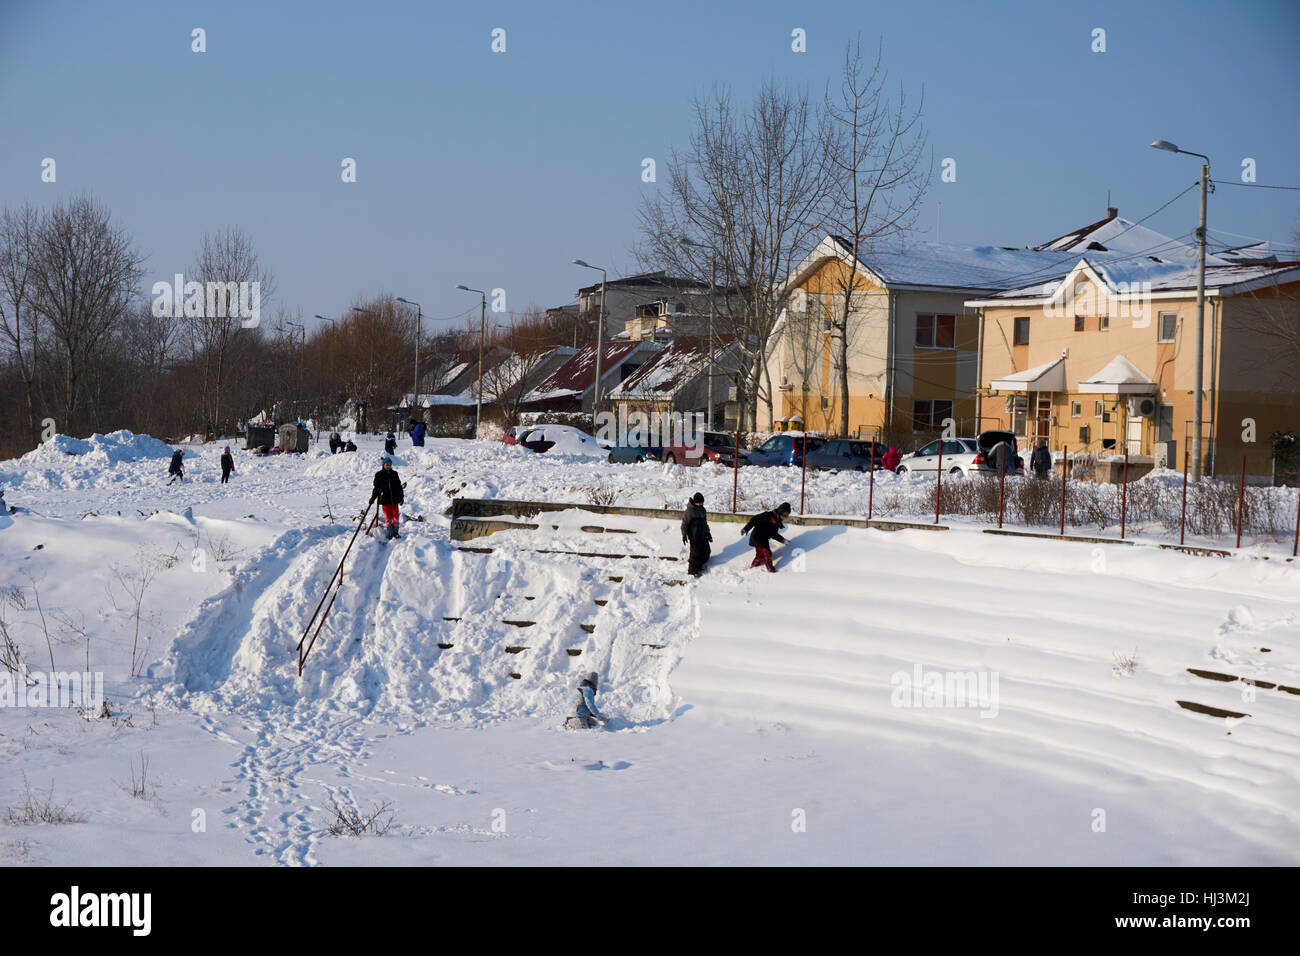 Winter scenes with happy kids and amazing pure nature beauty of snow